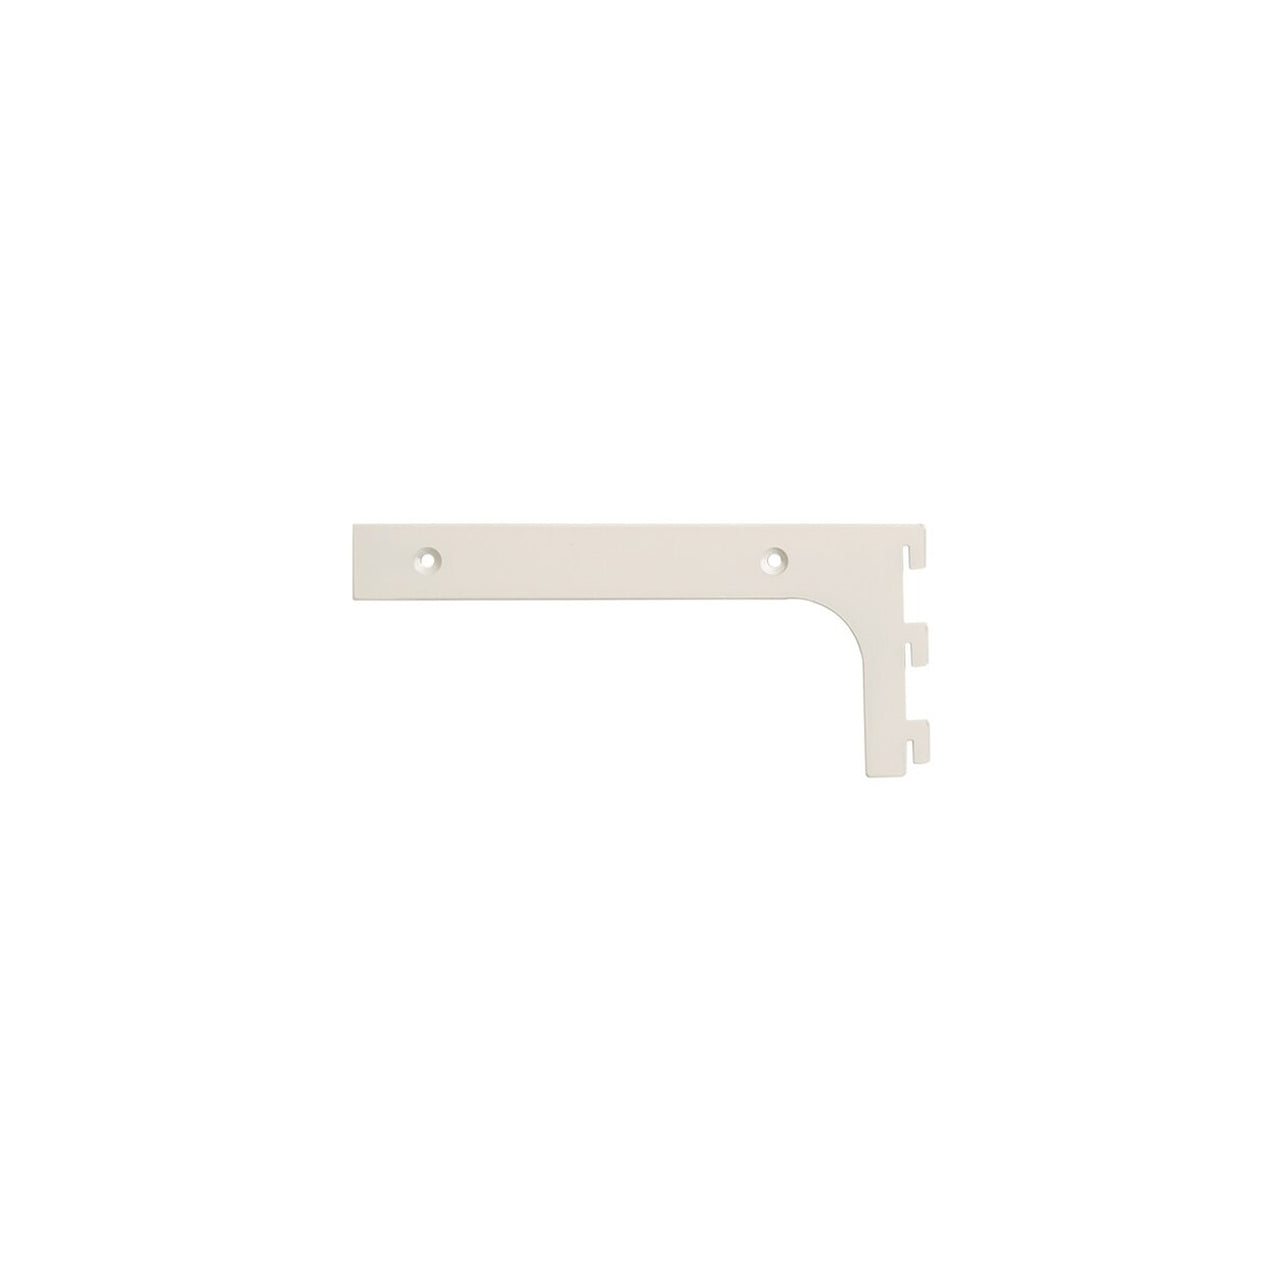 MAXe 30 mm shelf bracket set 200 mm D  30 H x 2.5 mm Thick E6002